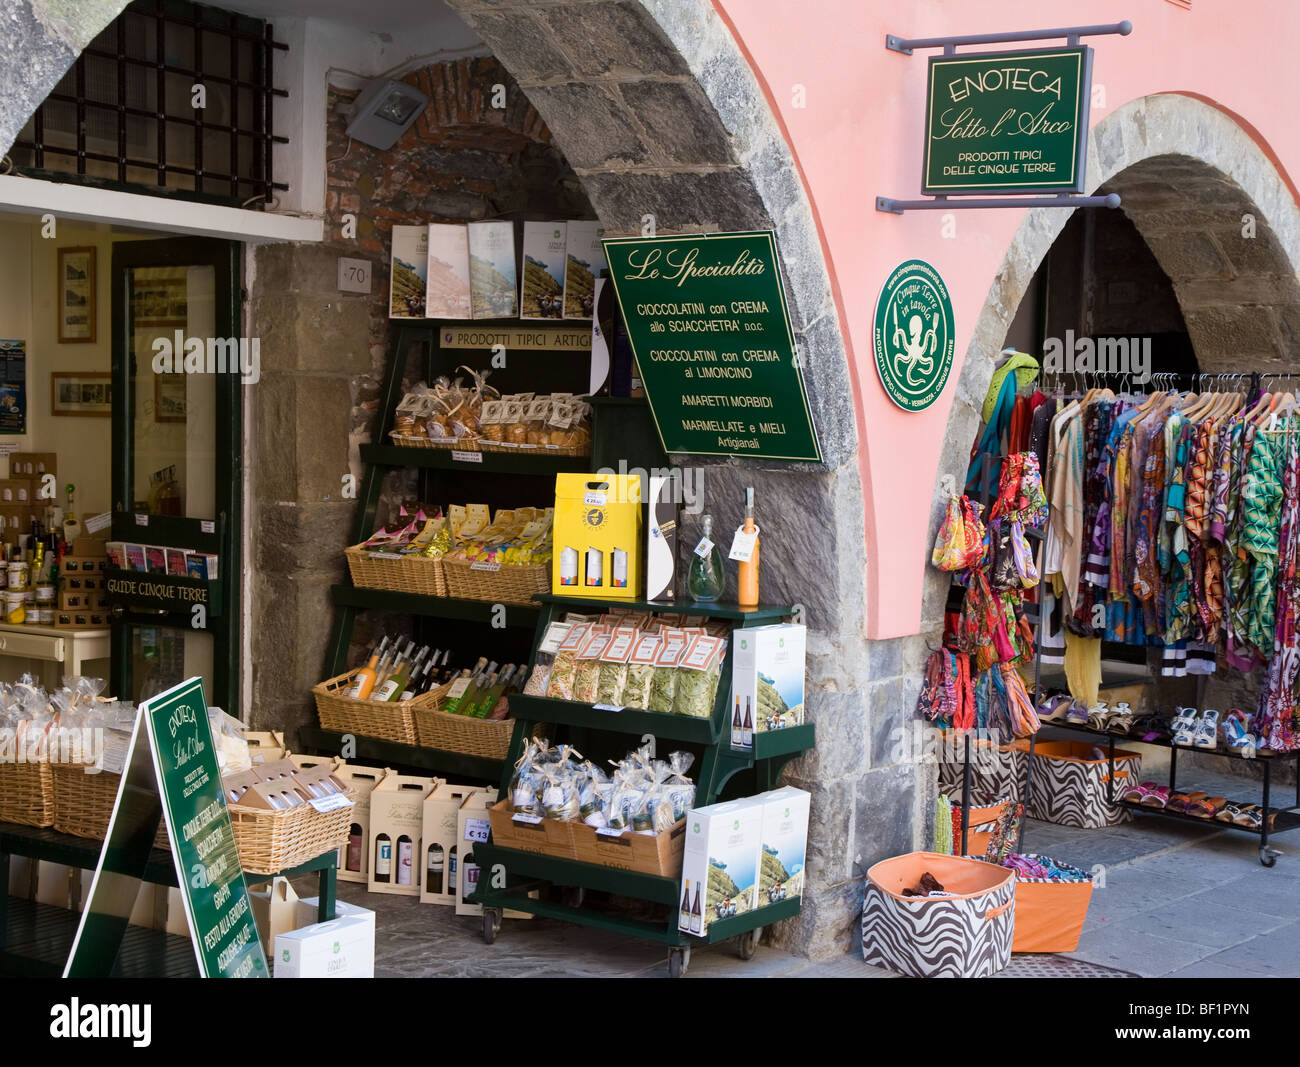 Shop selling local produce, Vernazza, Cinque Terre, Liguria, Italy - Stock Image